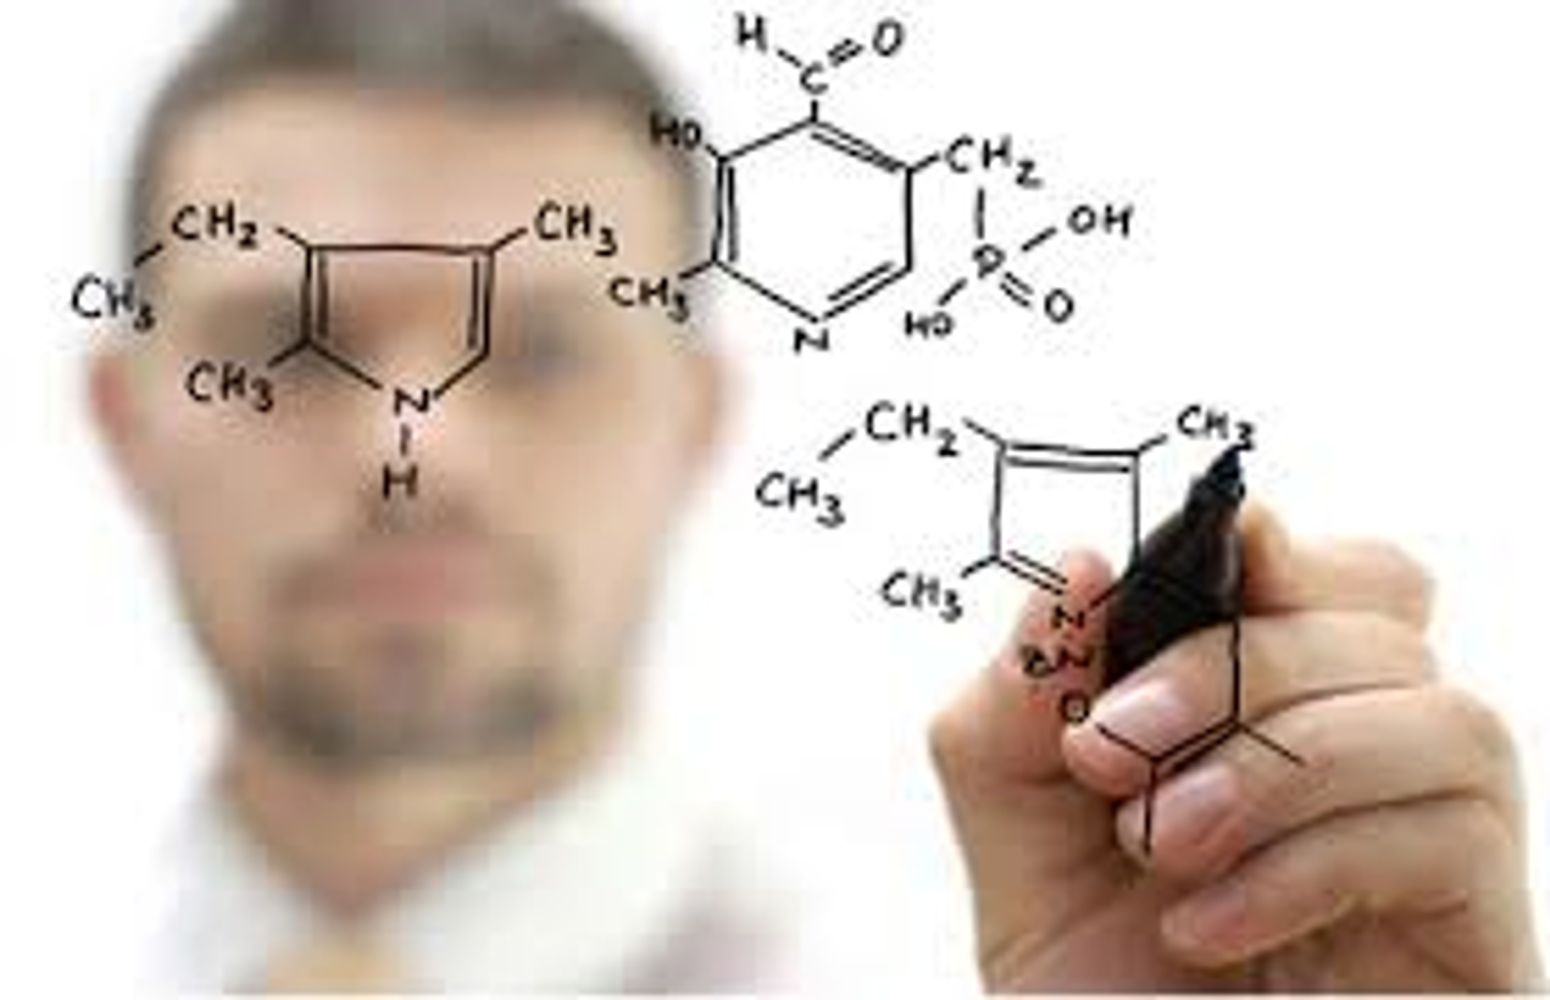 ChemPharmaPat-Chemical Patent Search Services conducted by chemist and pharmacist Bradley Roberts